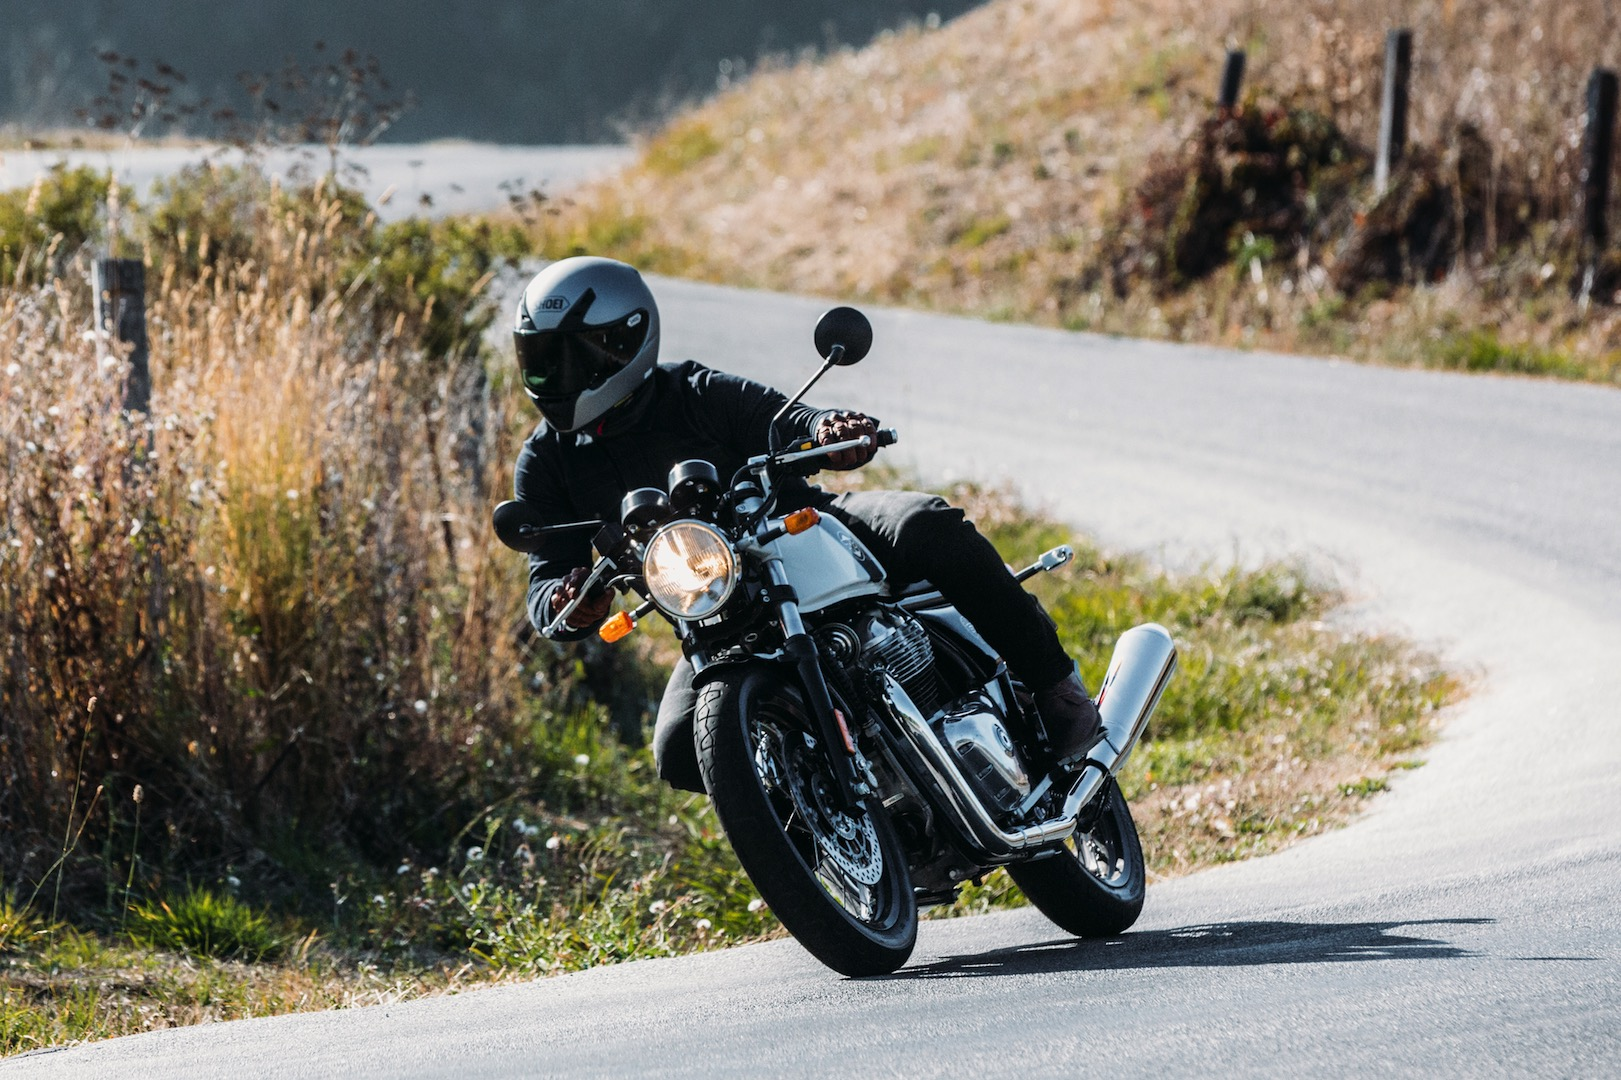 2019 Royal Enfield Continental GT 650 review